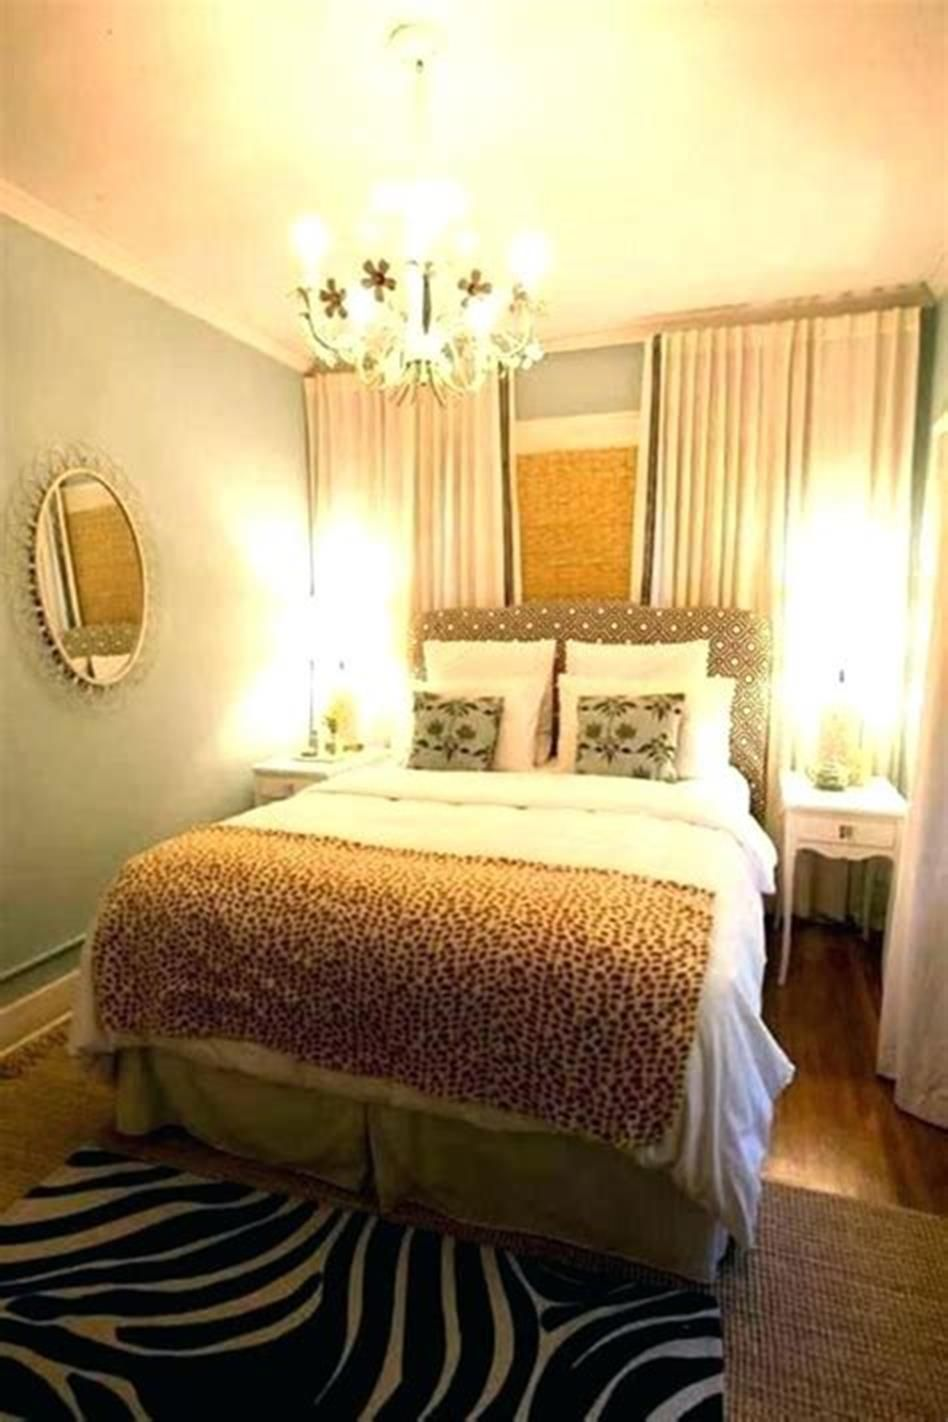 55 amazing small master bedroom decorating design ideas on - Small bedroom decorating ideas on a budget ...